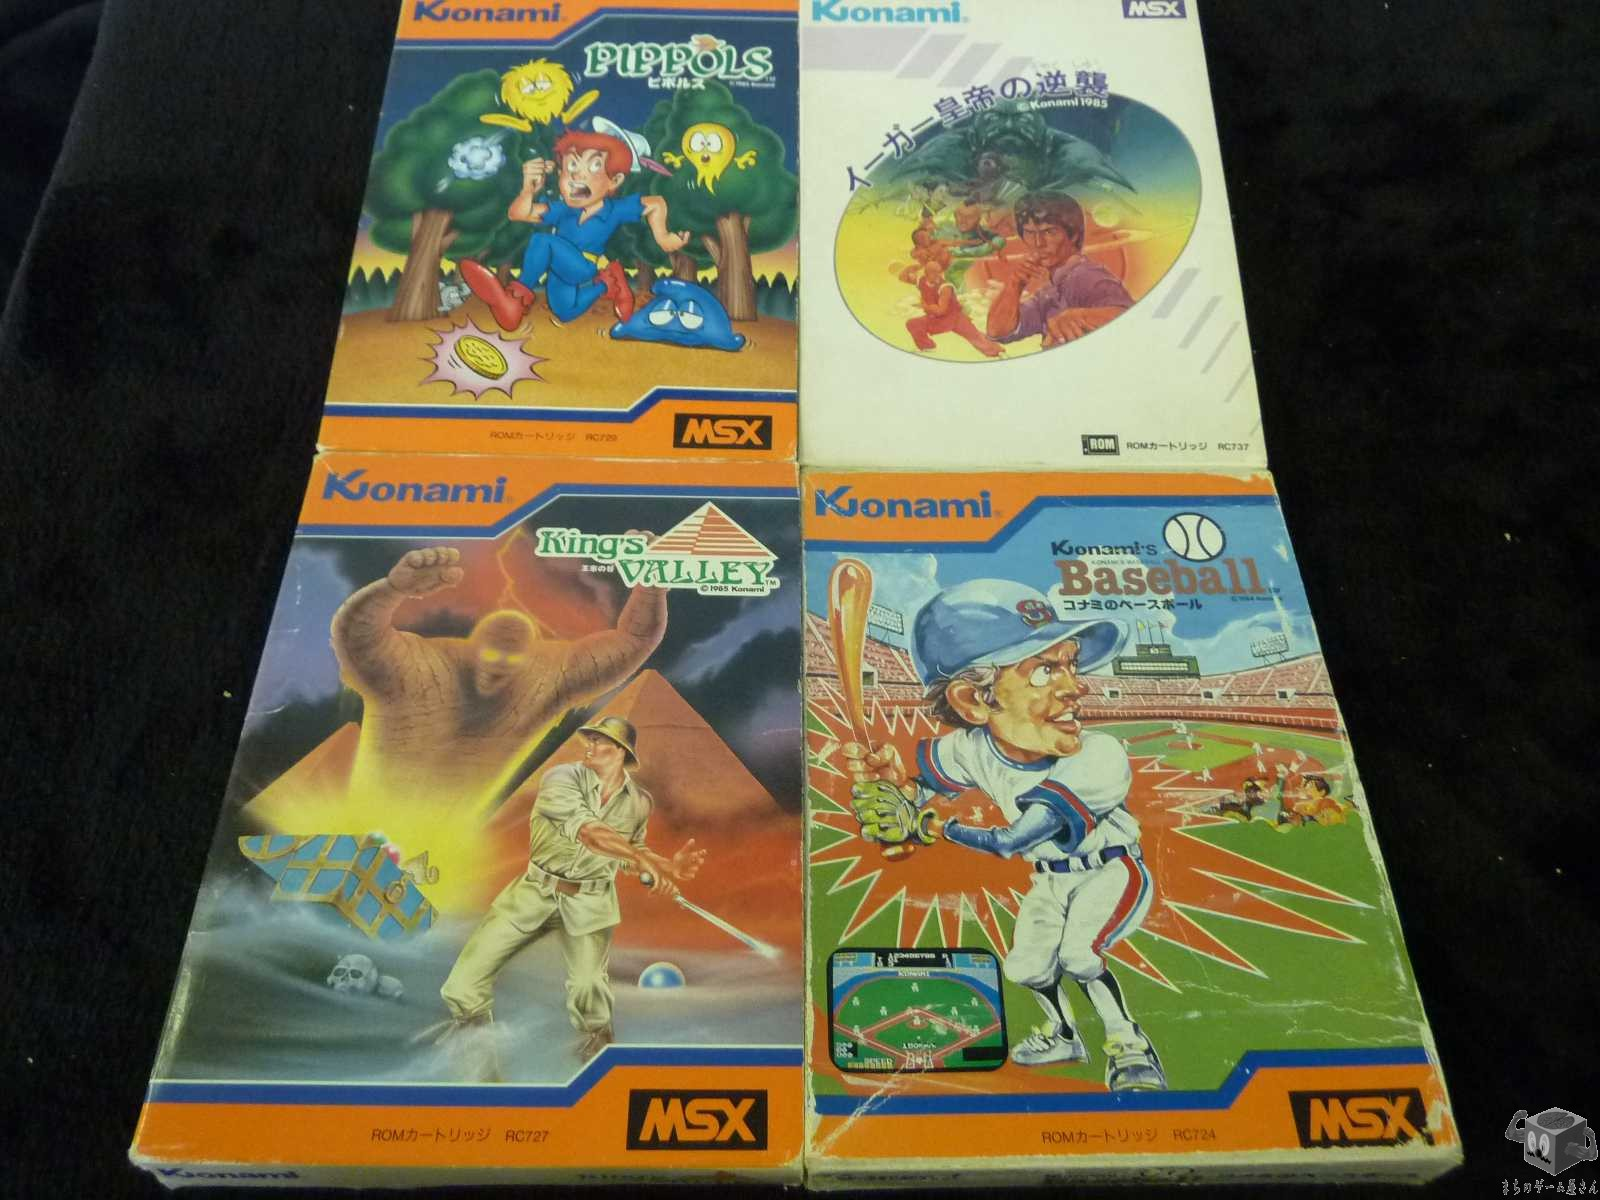 [MSX] Piporusu + King's valley + Iga kotei + baseball 4games